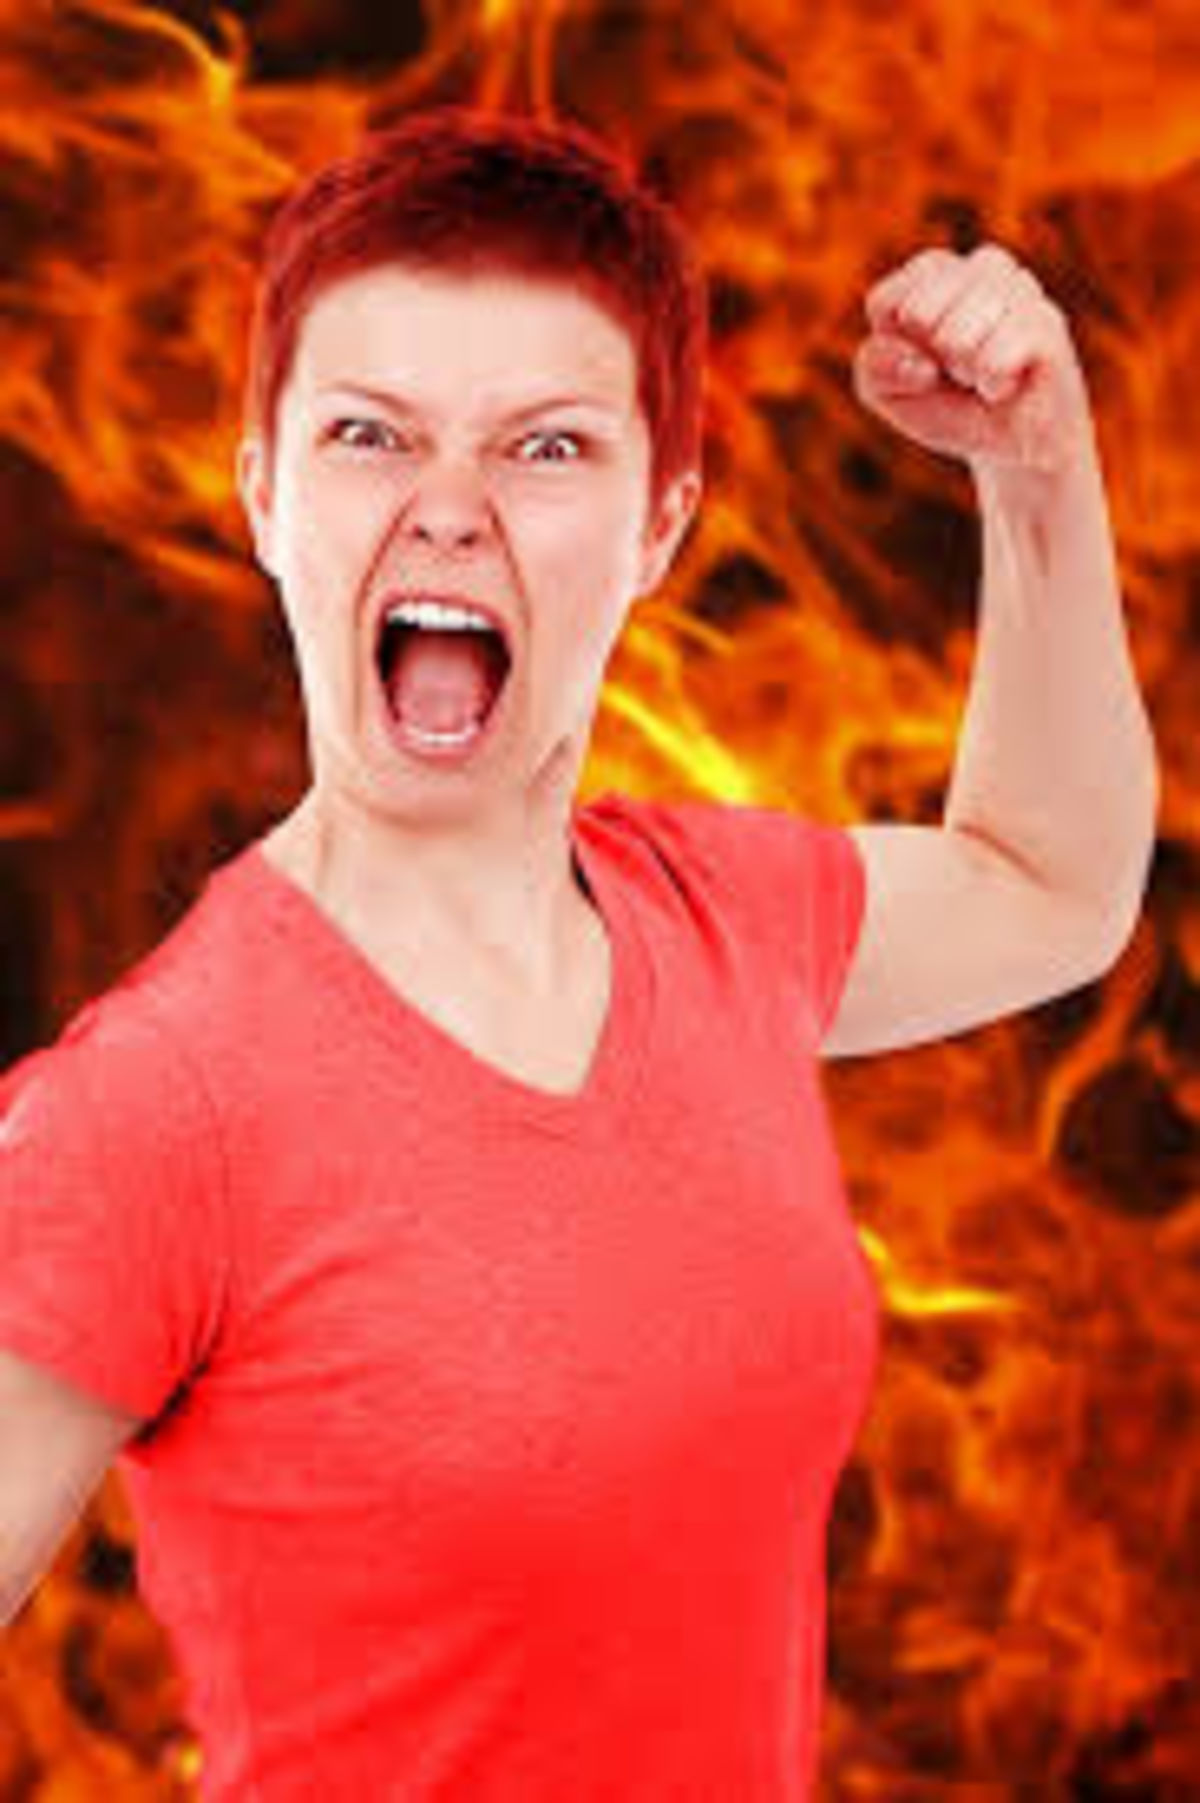 Does Your Partner Have Rage Attacks? Here's What to Do